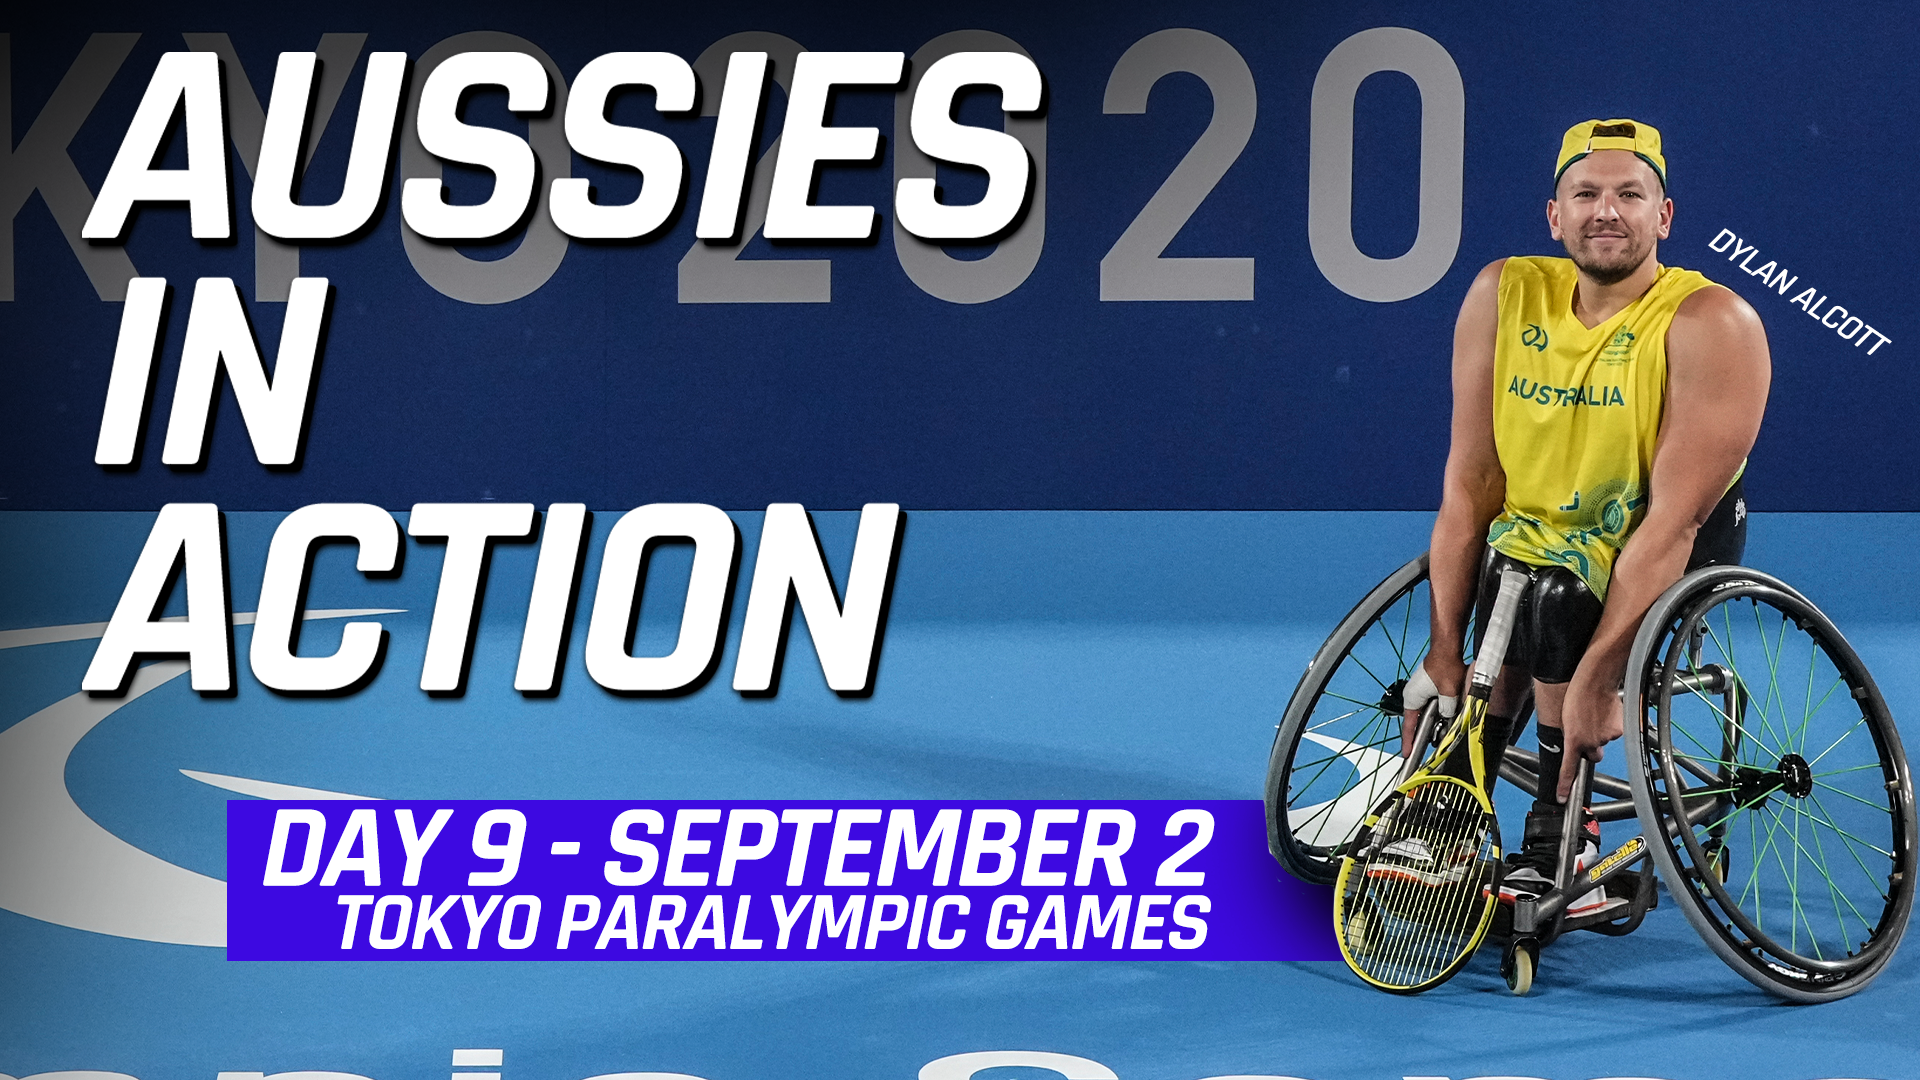 Australian results Tokyo Paralympic Games Day 9, Aussies in action: Four gold medals in an extraordinary night for the green and gold